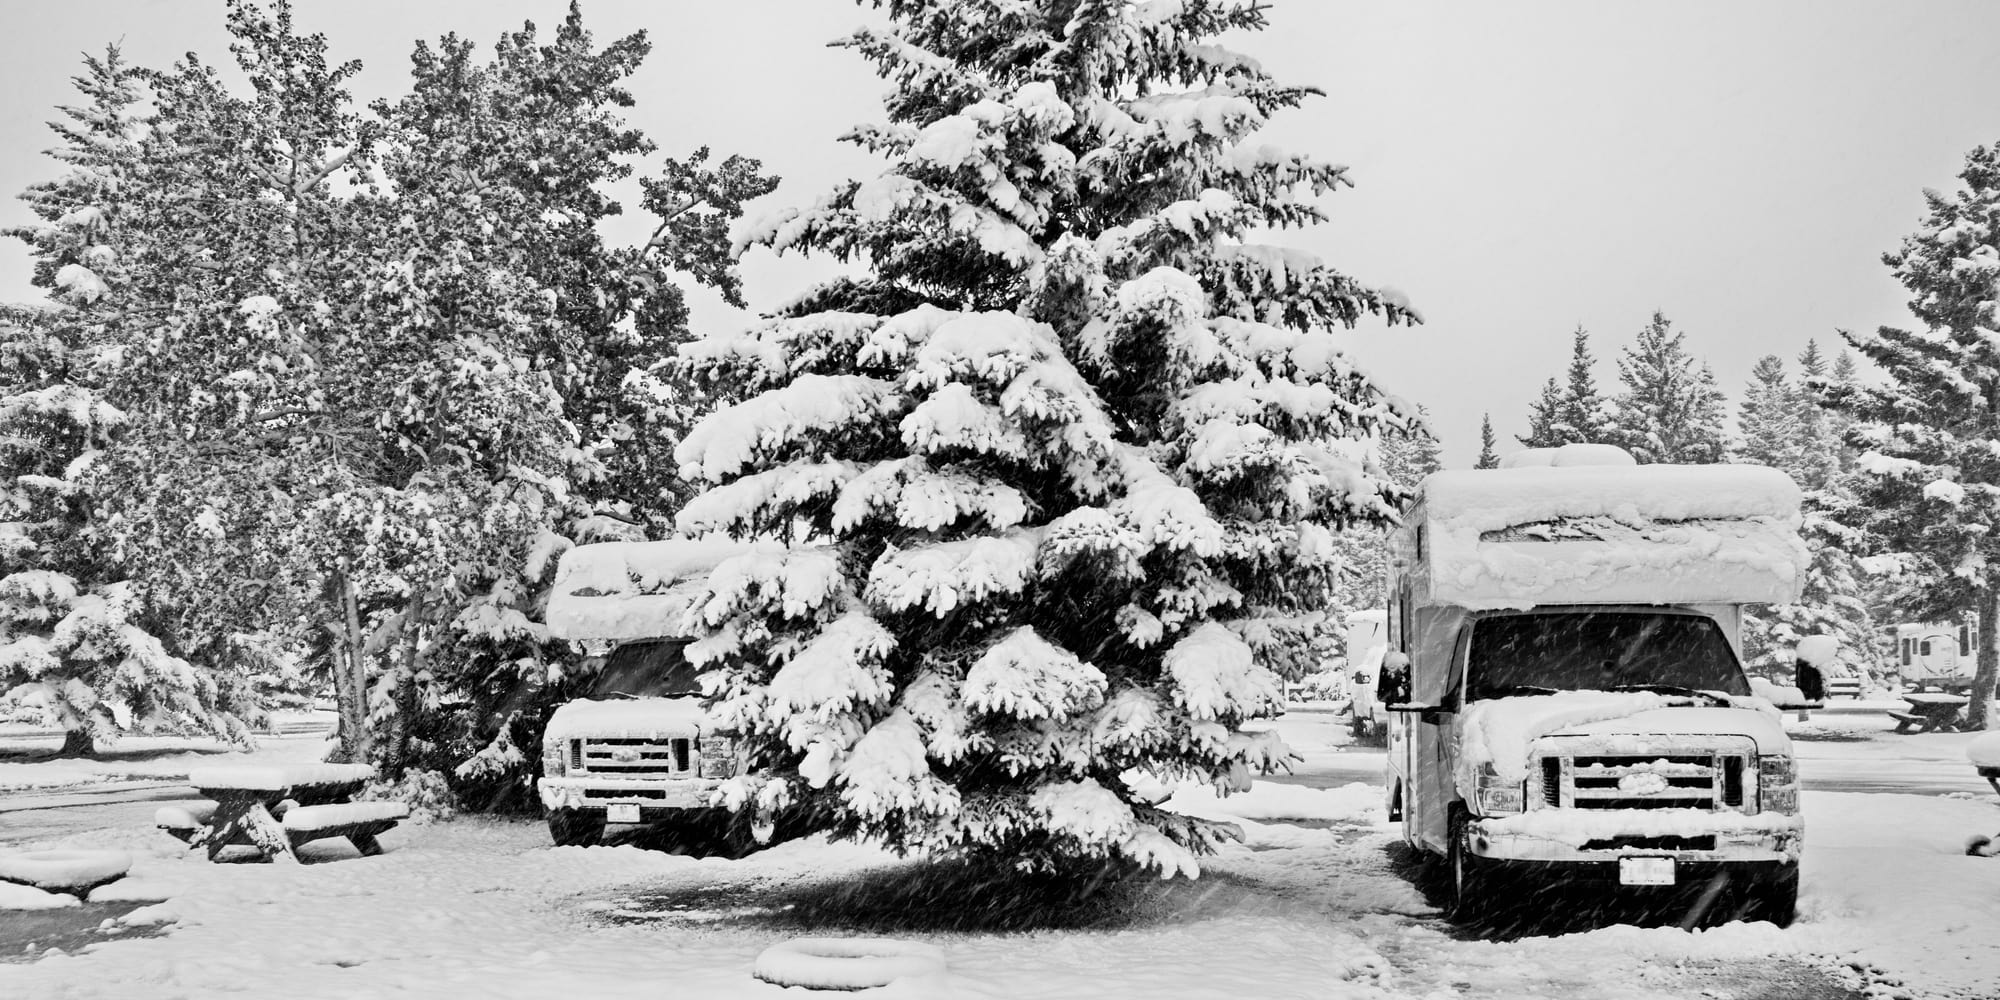 Snowy scenery with two rvs parked next to a snow-covered pine tree